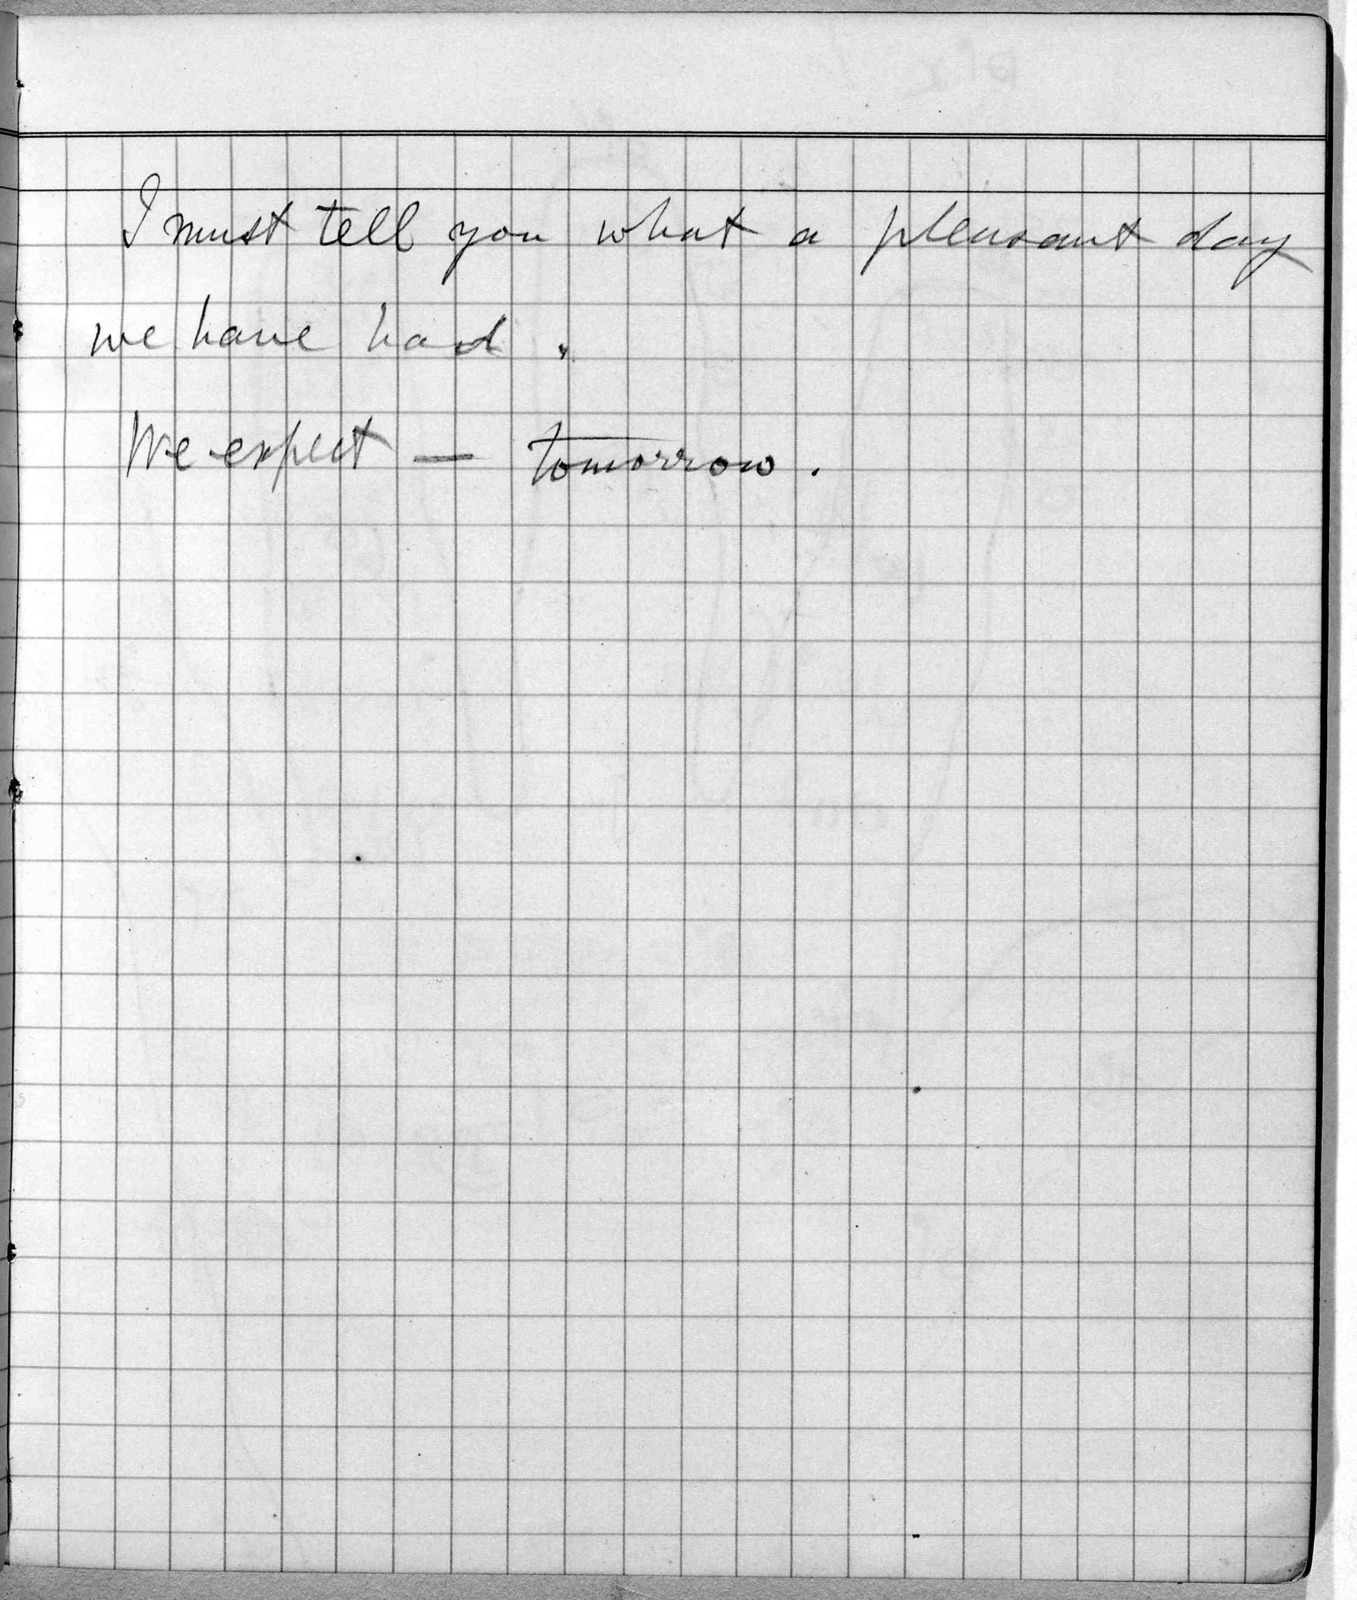 Notebook by Alexander Graham Bell, from January 19, 1883 to January 23, 1883